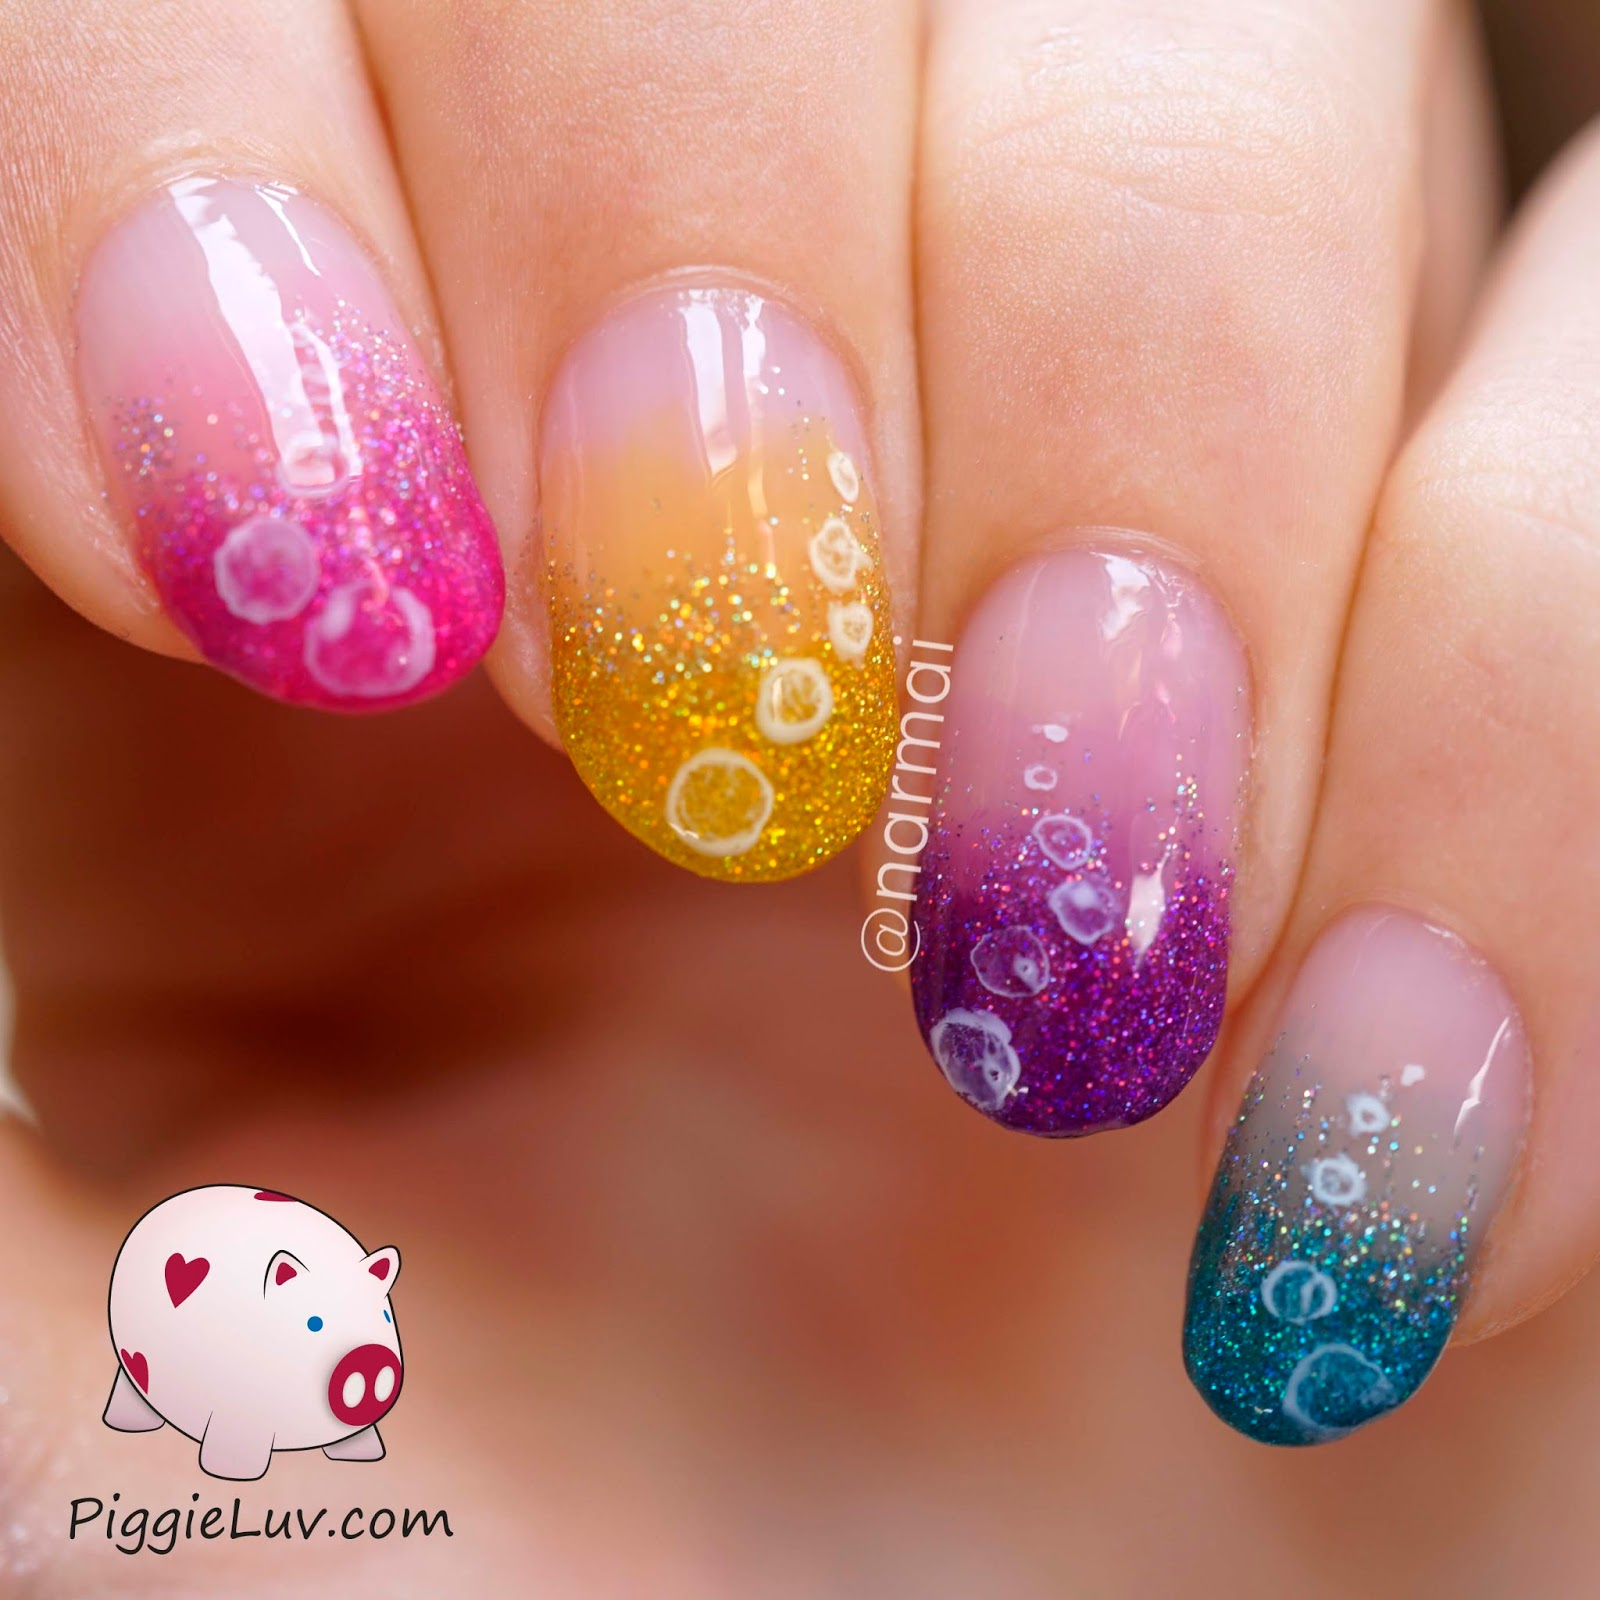 PiggieLuv: Glitter bubbles nail art with OPI Color Paints & Sheer Tints